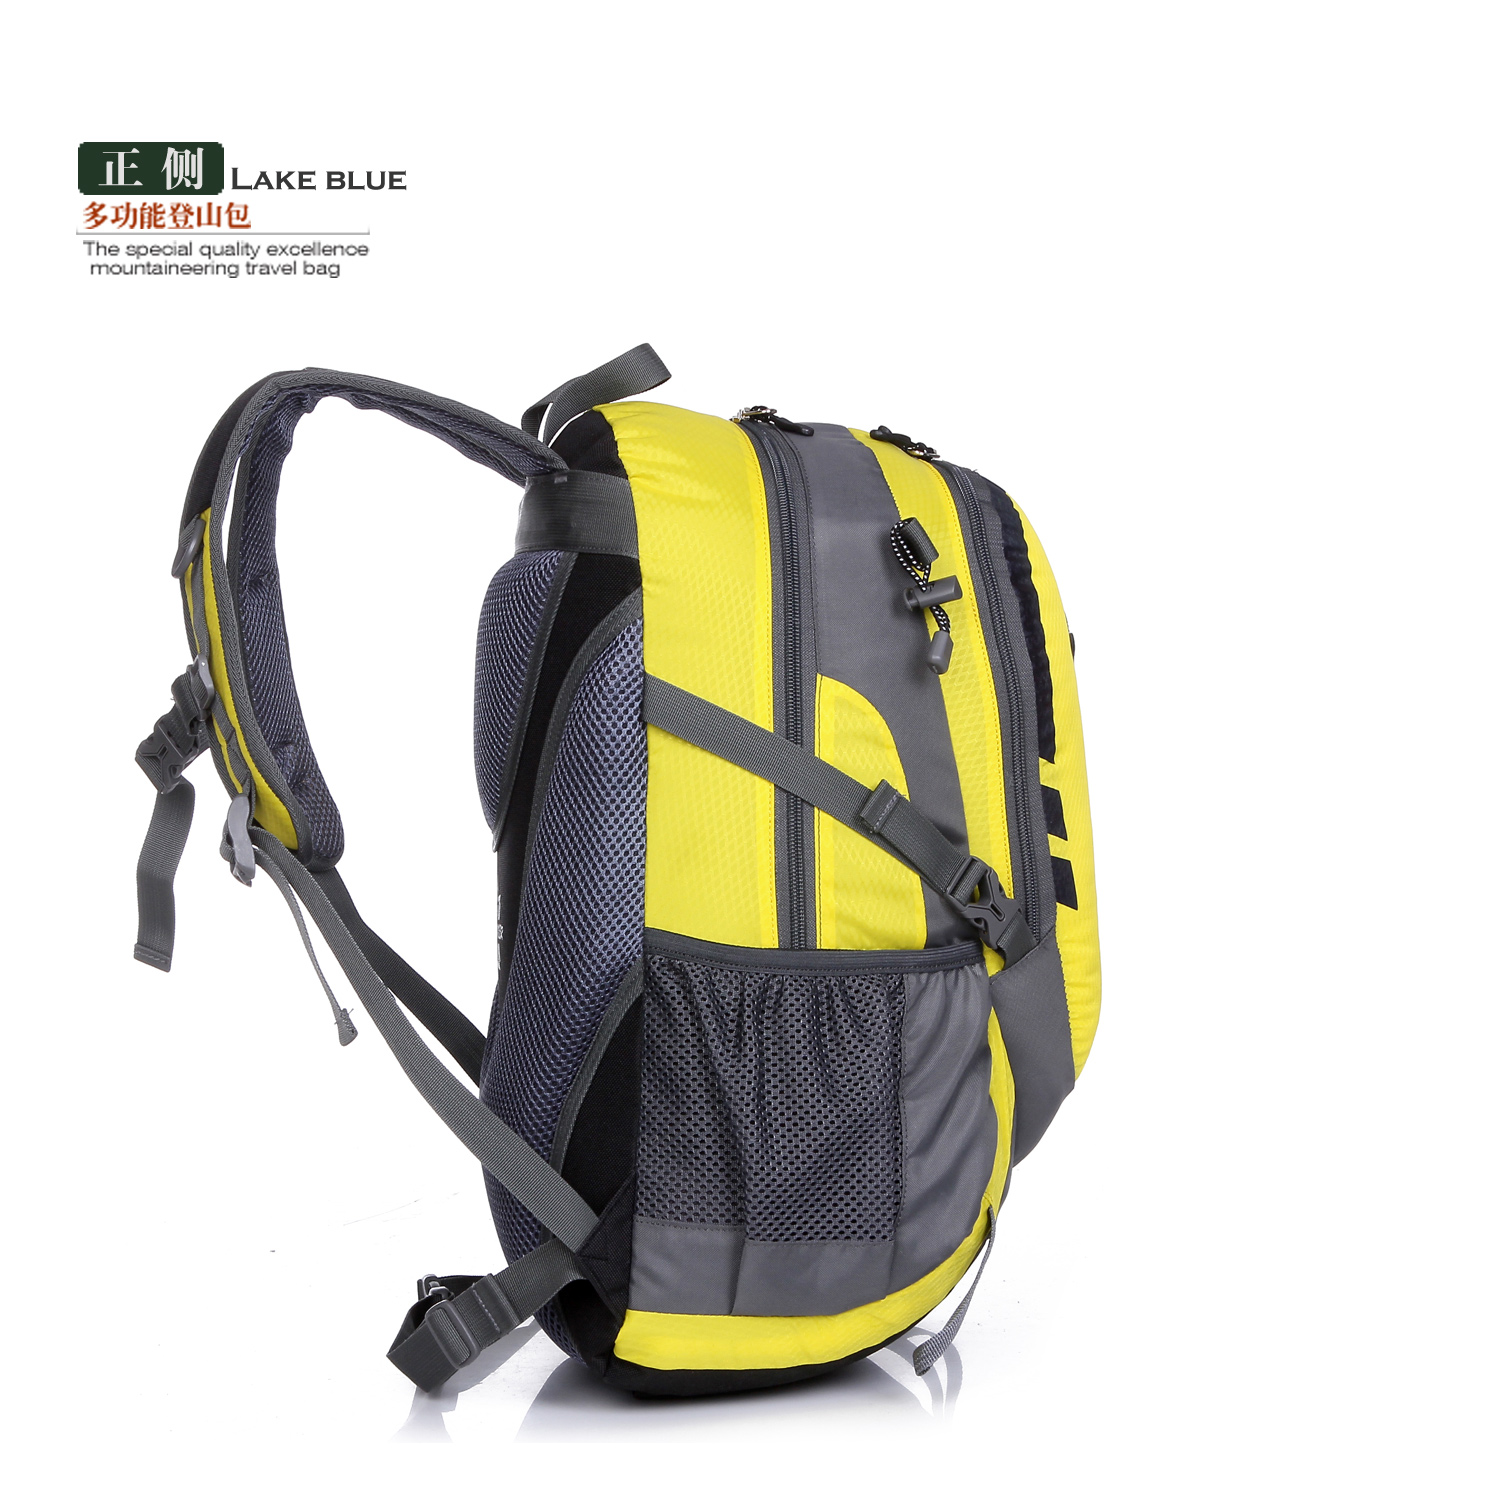 Lightweight multi-function durable hiking travel bag1